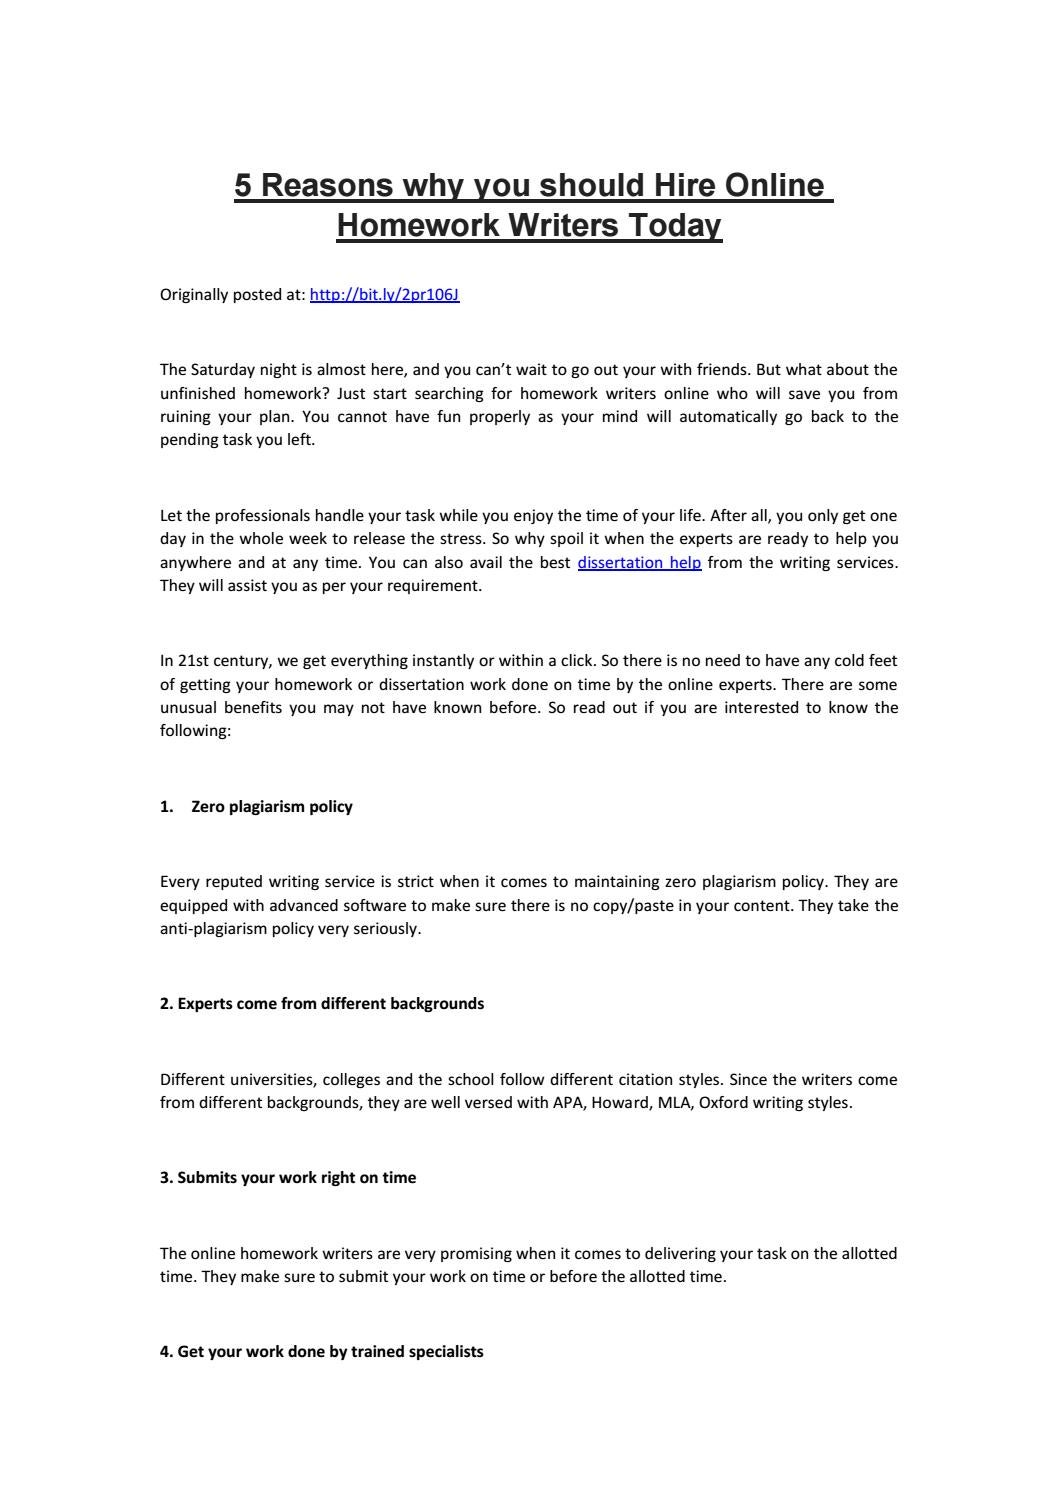 Home work writing for hire resume technical writer albany ny